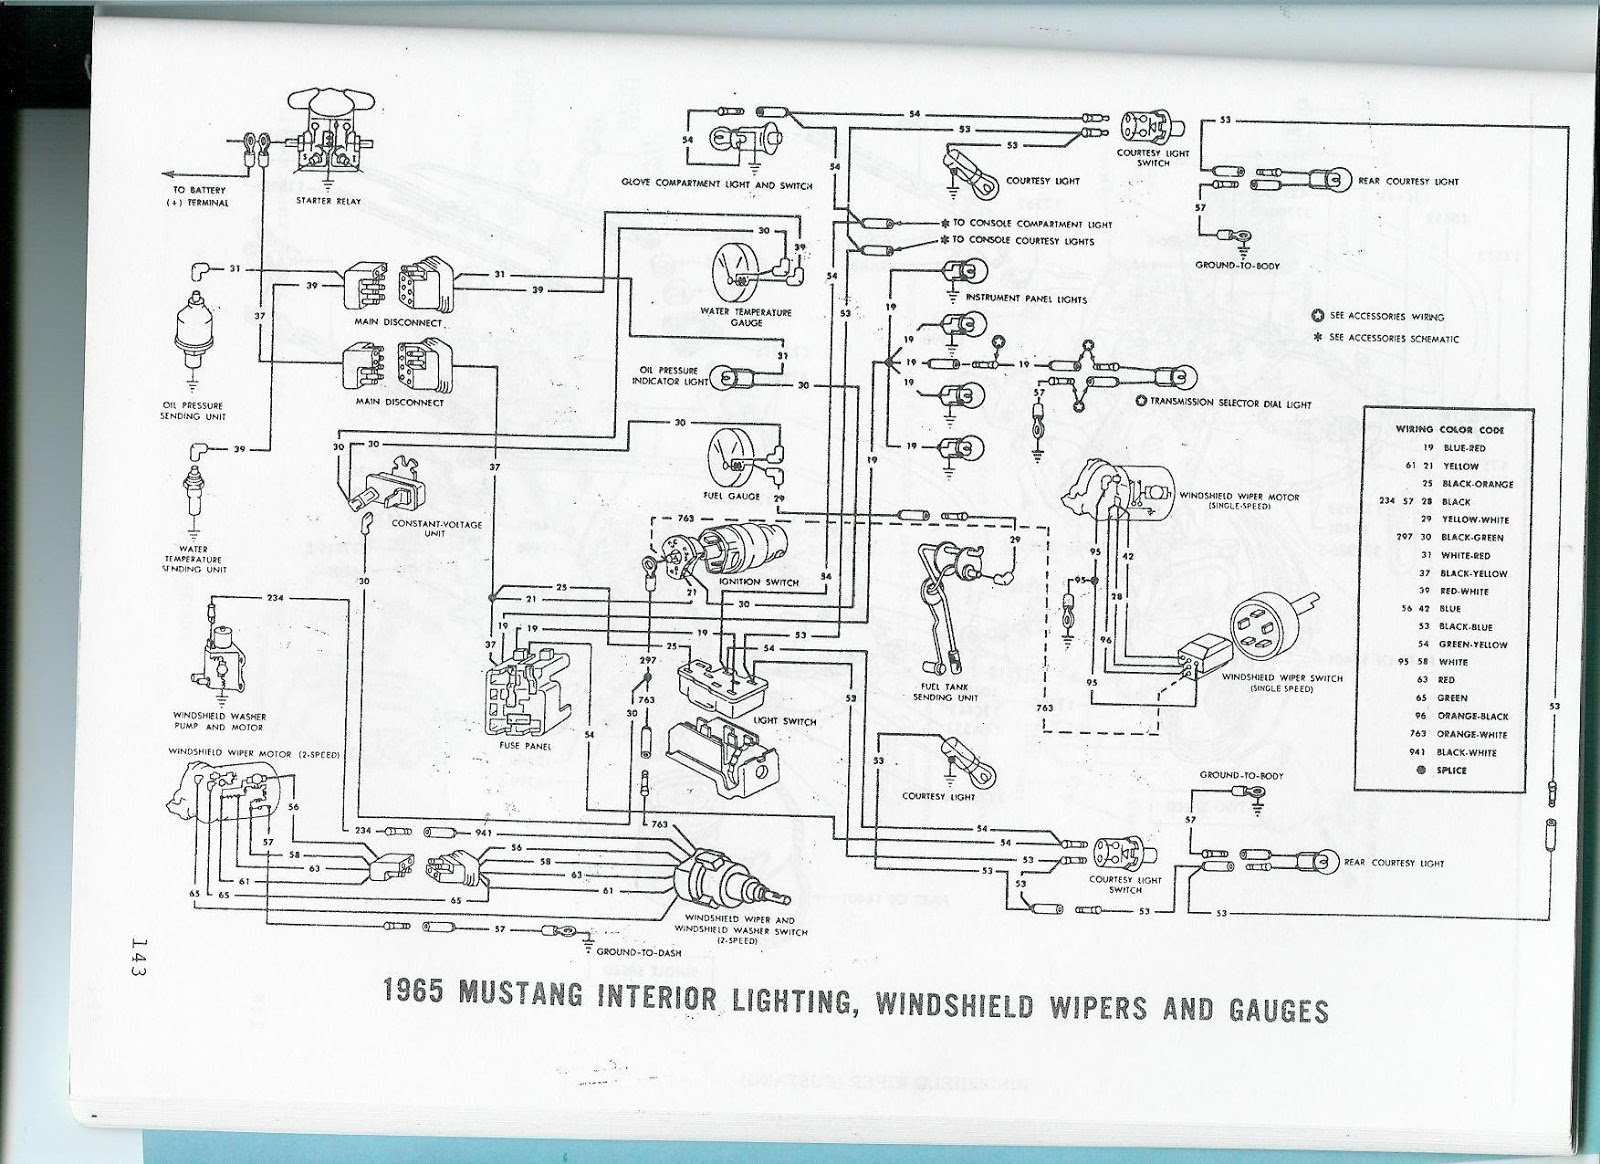 67 Coronet Wiring Diagram Library Chevy Truck Headlight Care Feeding Ponies 1965 Mustang Diagrams Ford 1969 Pontiac Gto 1967